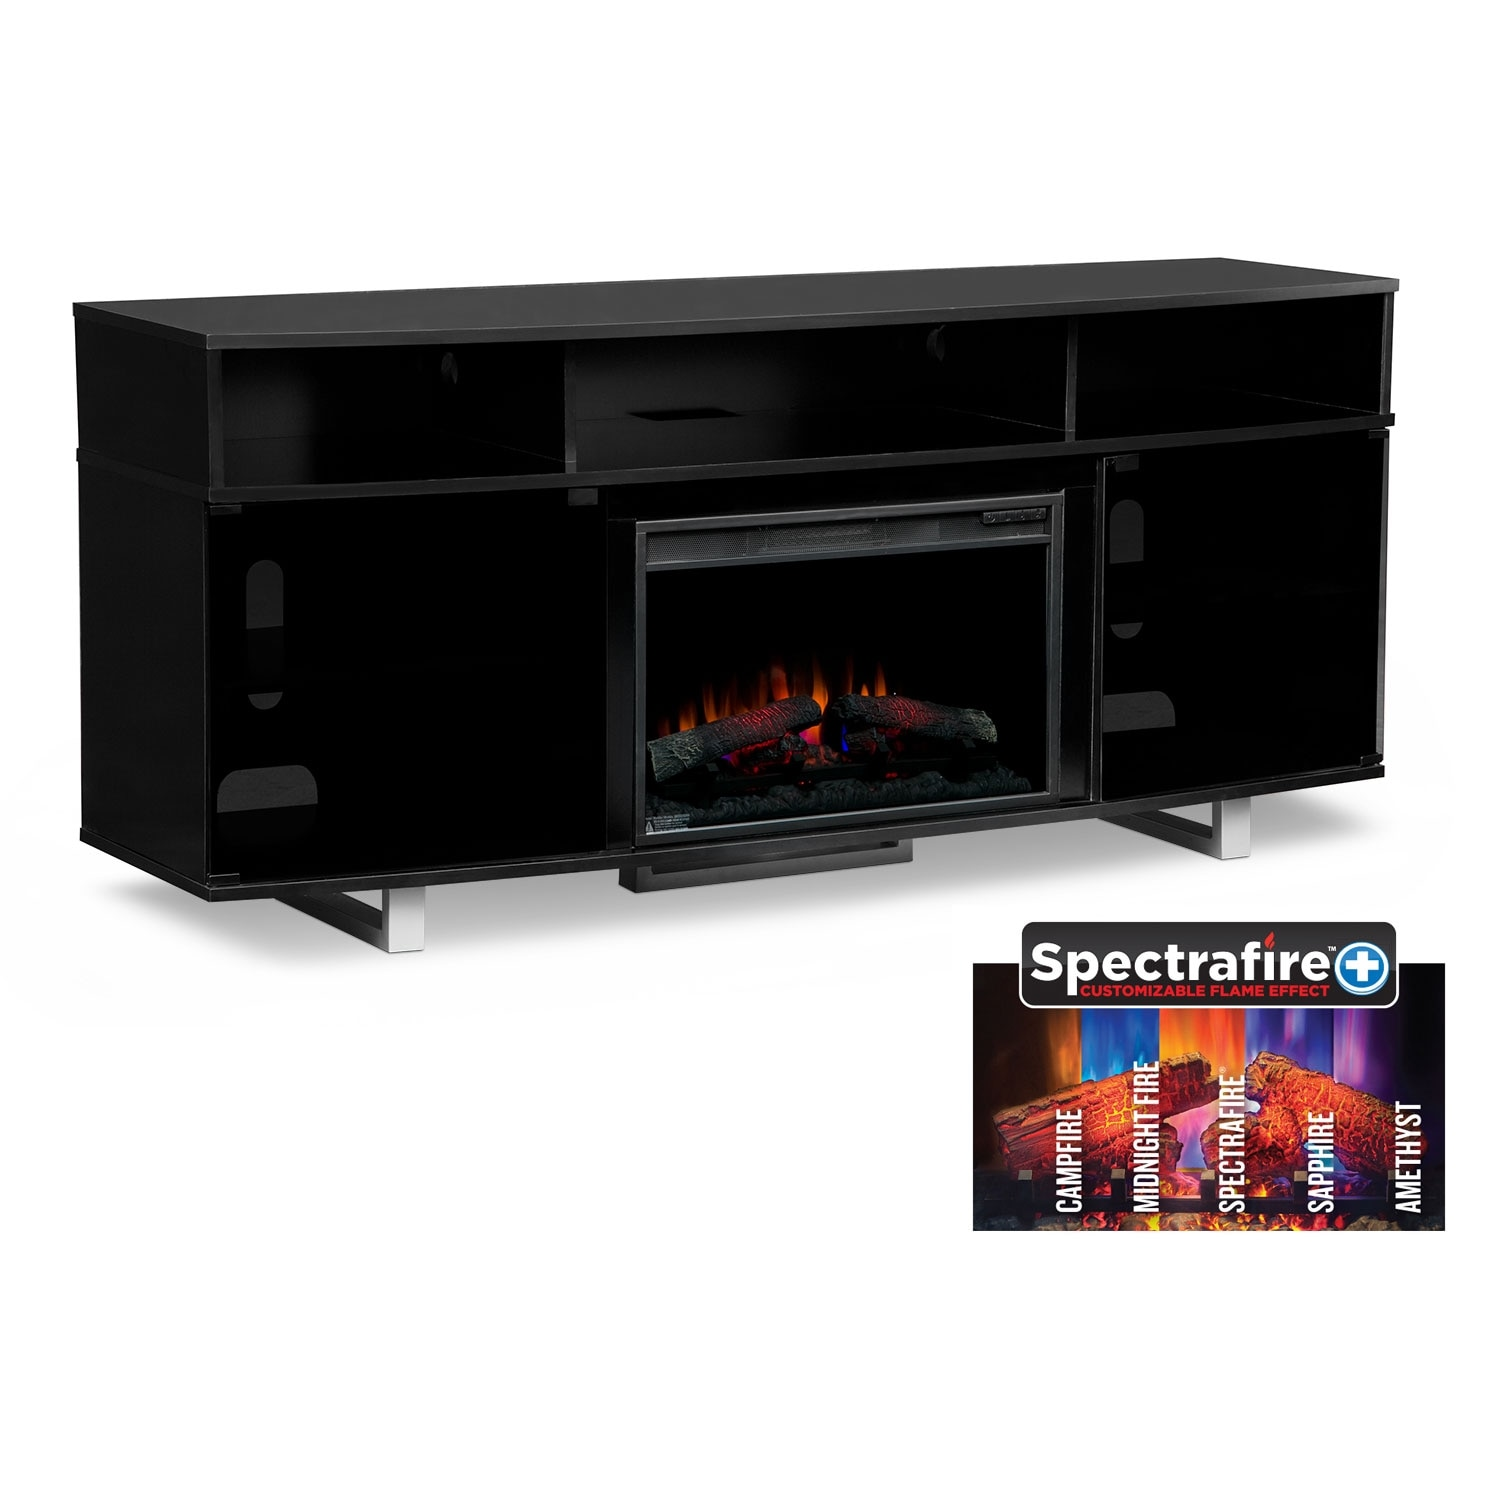 Pacer 72  Traditional Fireplace TV Stand   Black. T V Stands   Media Centers   Value City Furniture